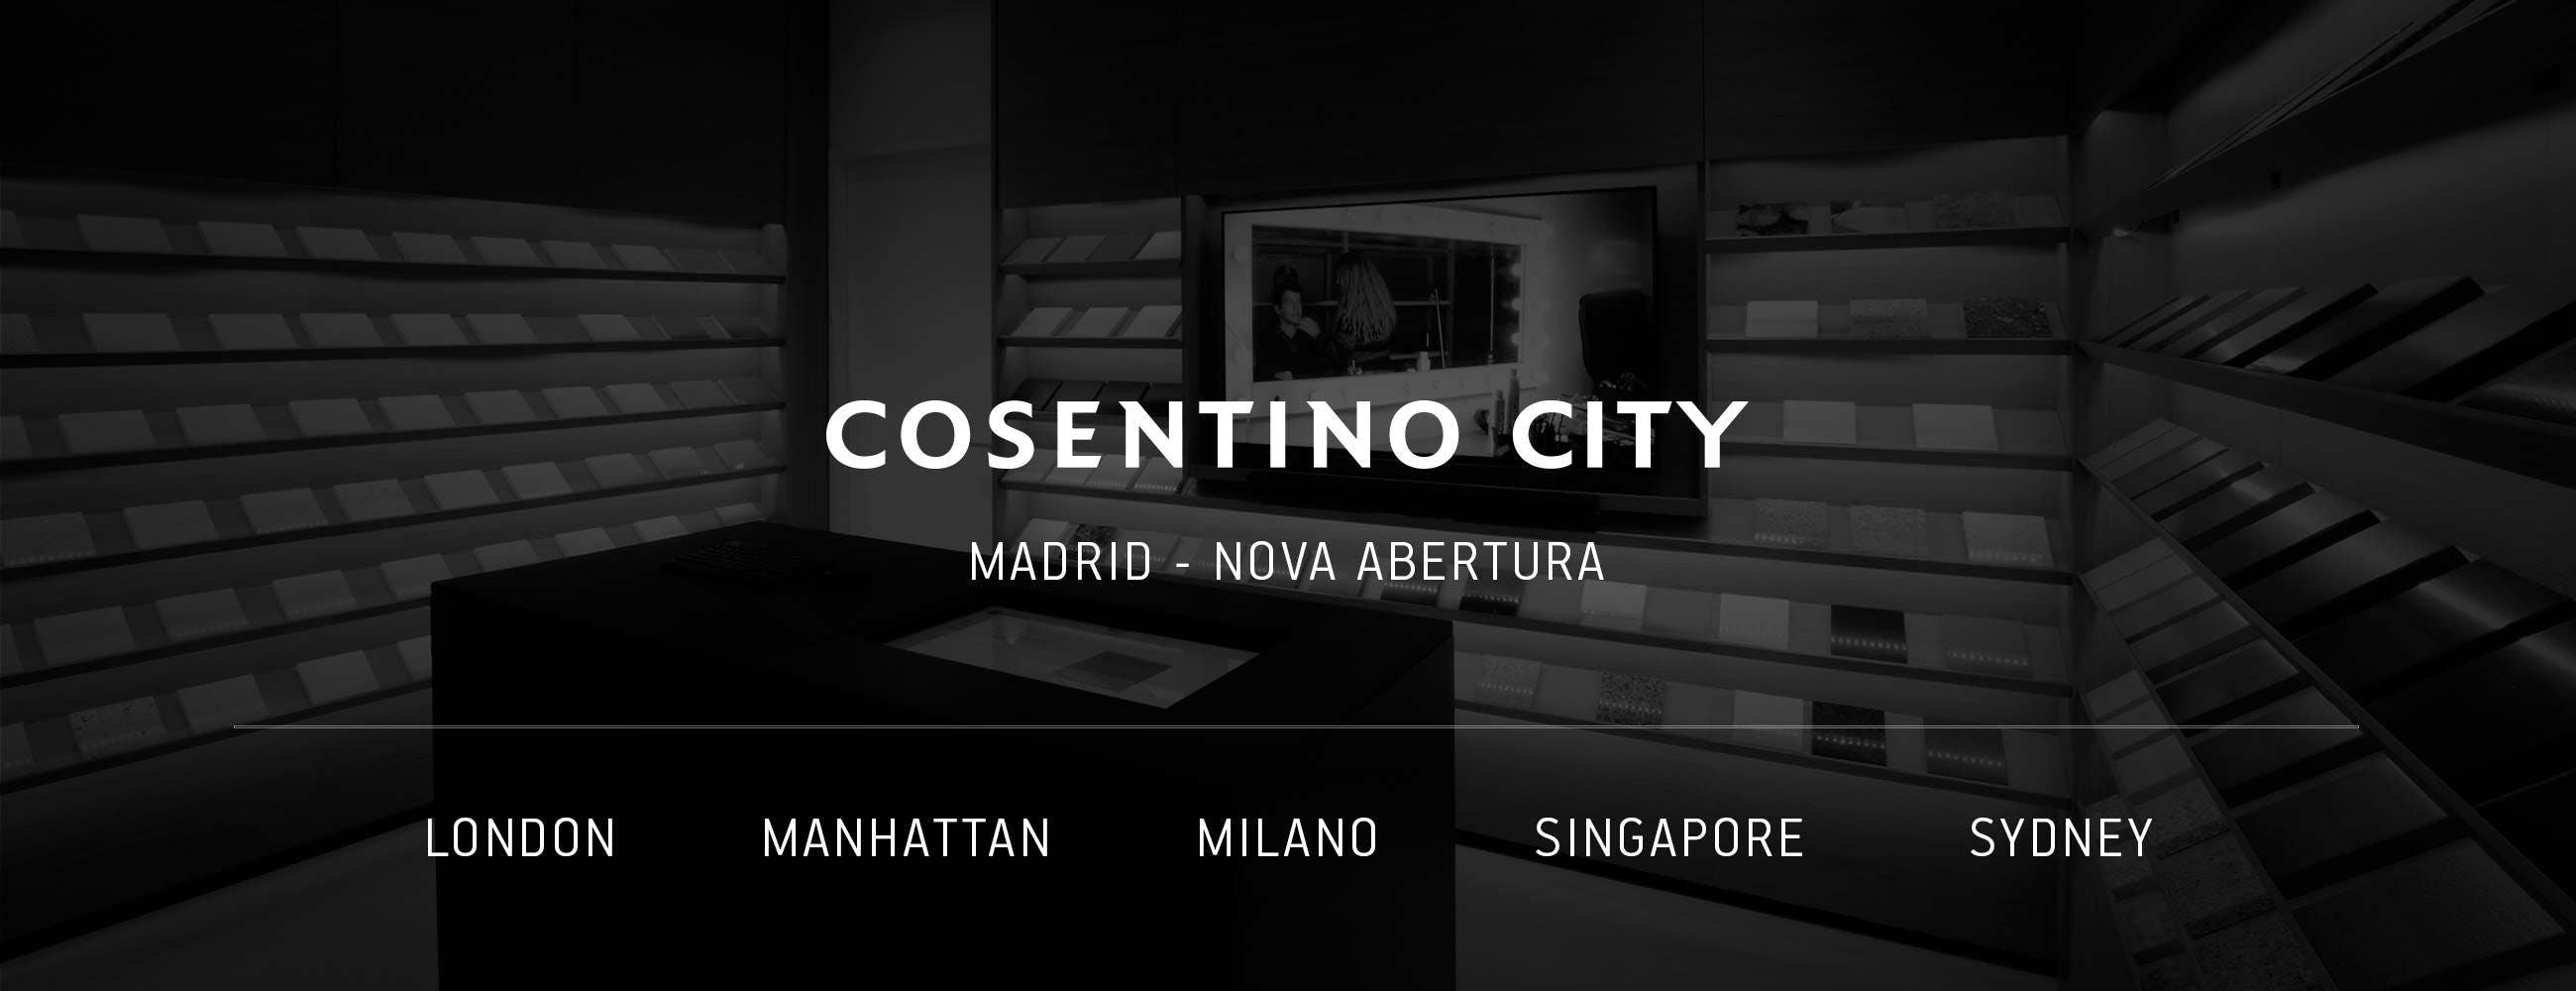 Nova Abertura Cosentino City Madrid